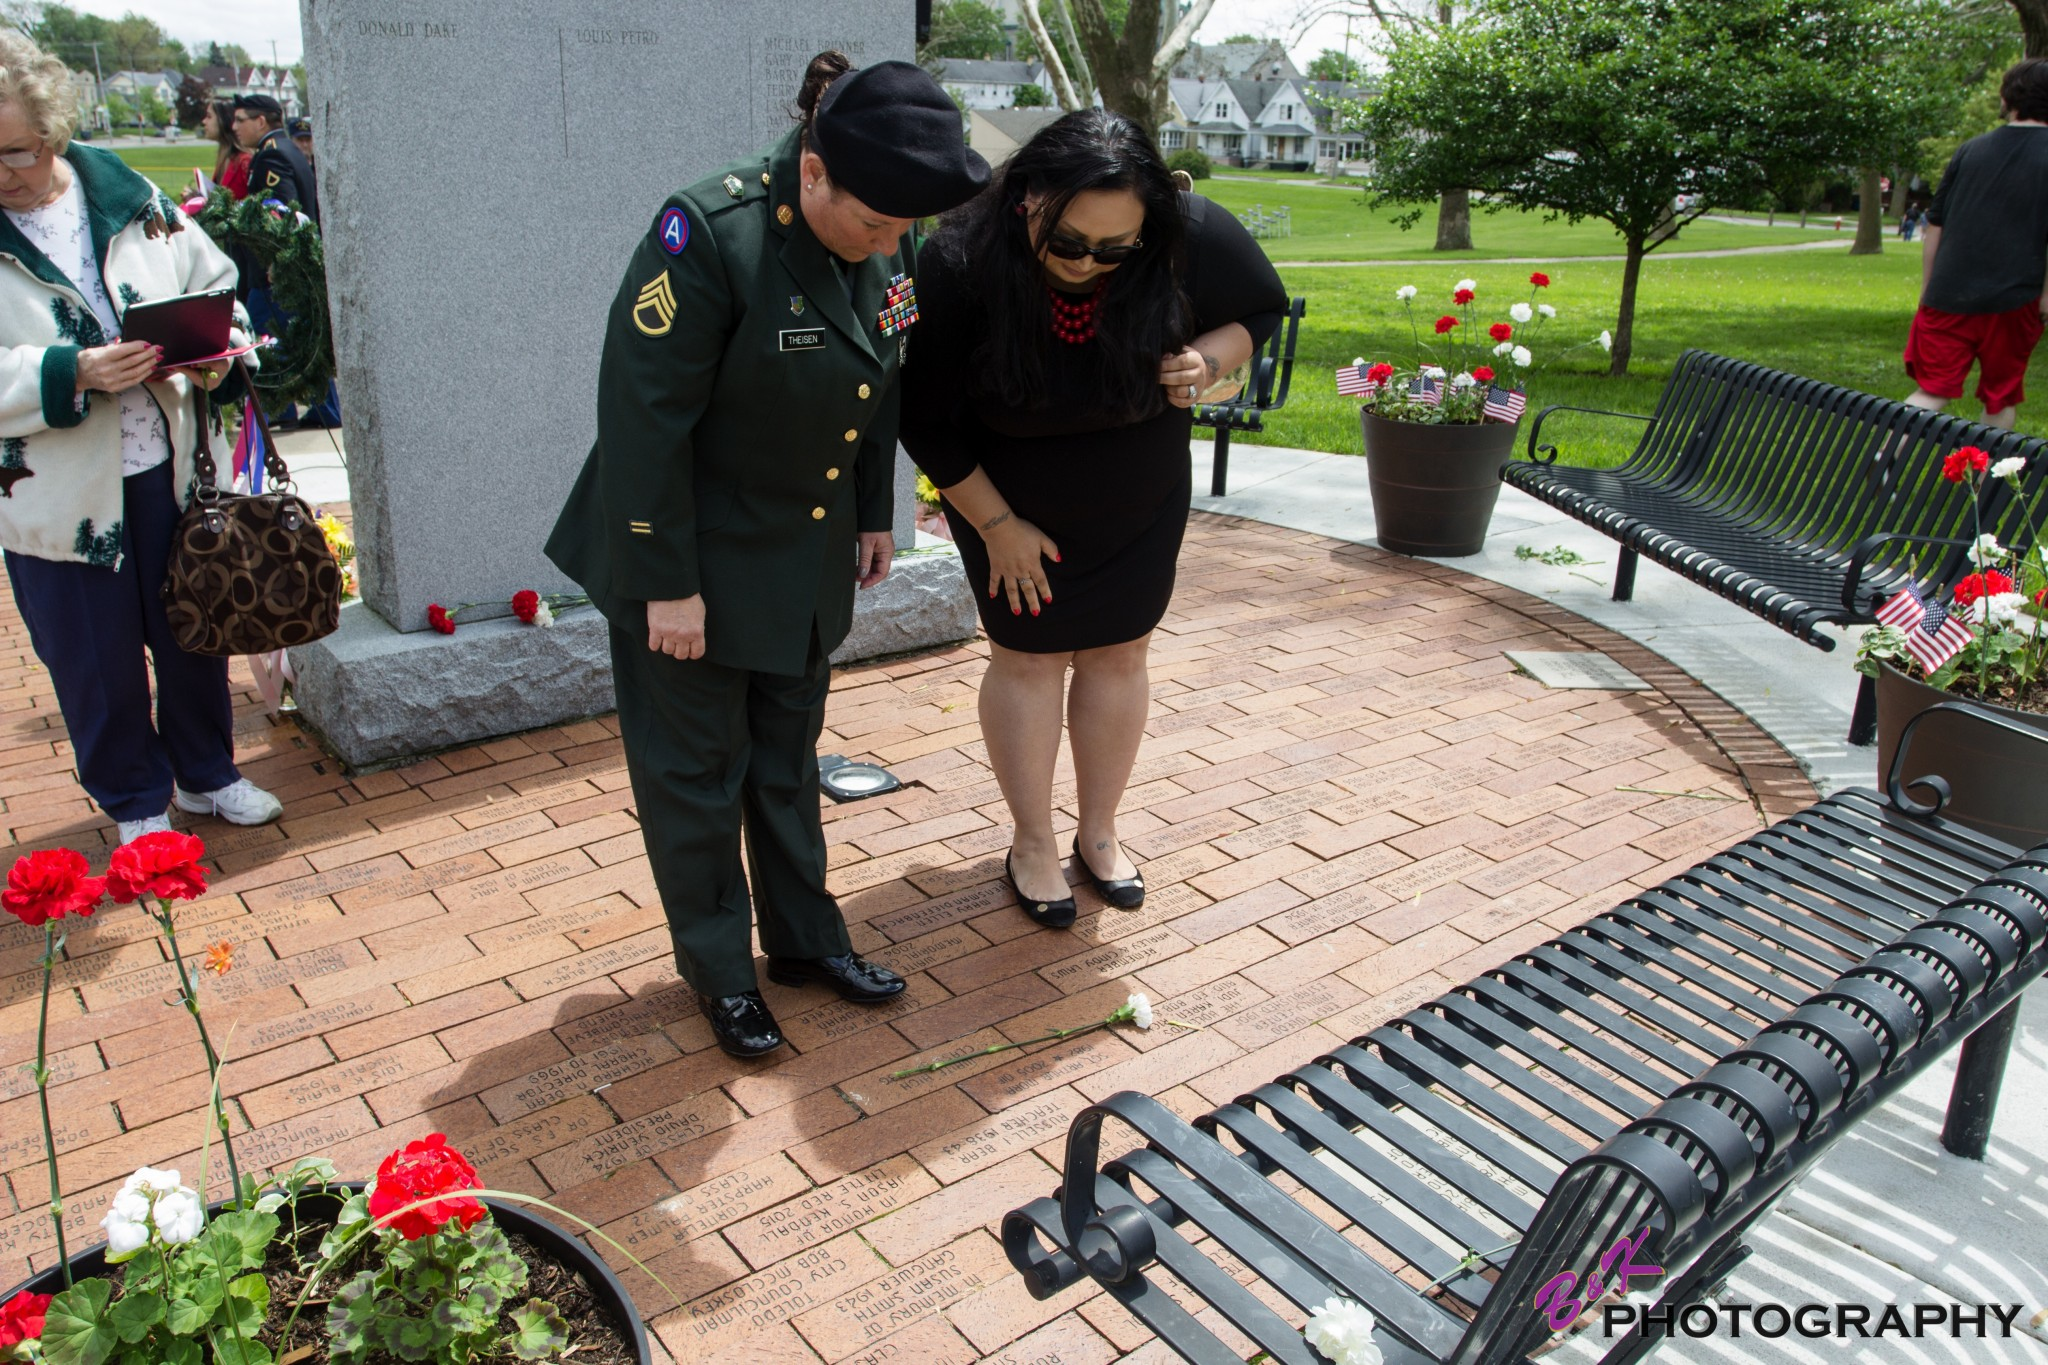 "Gold Star Wife Veronica Mora and SSGT Susan Theisen place a carnation on the memorial brick placed in memory of Sgt. Arthur Mora Jr., killed in action in Operation Iraqi Freedom on Oct. 19, 2005.  (Photo courtesy of B &amp; K Photo/<a href=""http://www.facebook.com/BKphotovideo"">www.facebook.com/BKphotovideo</a>)"